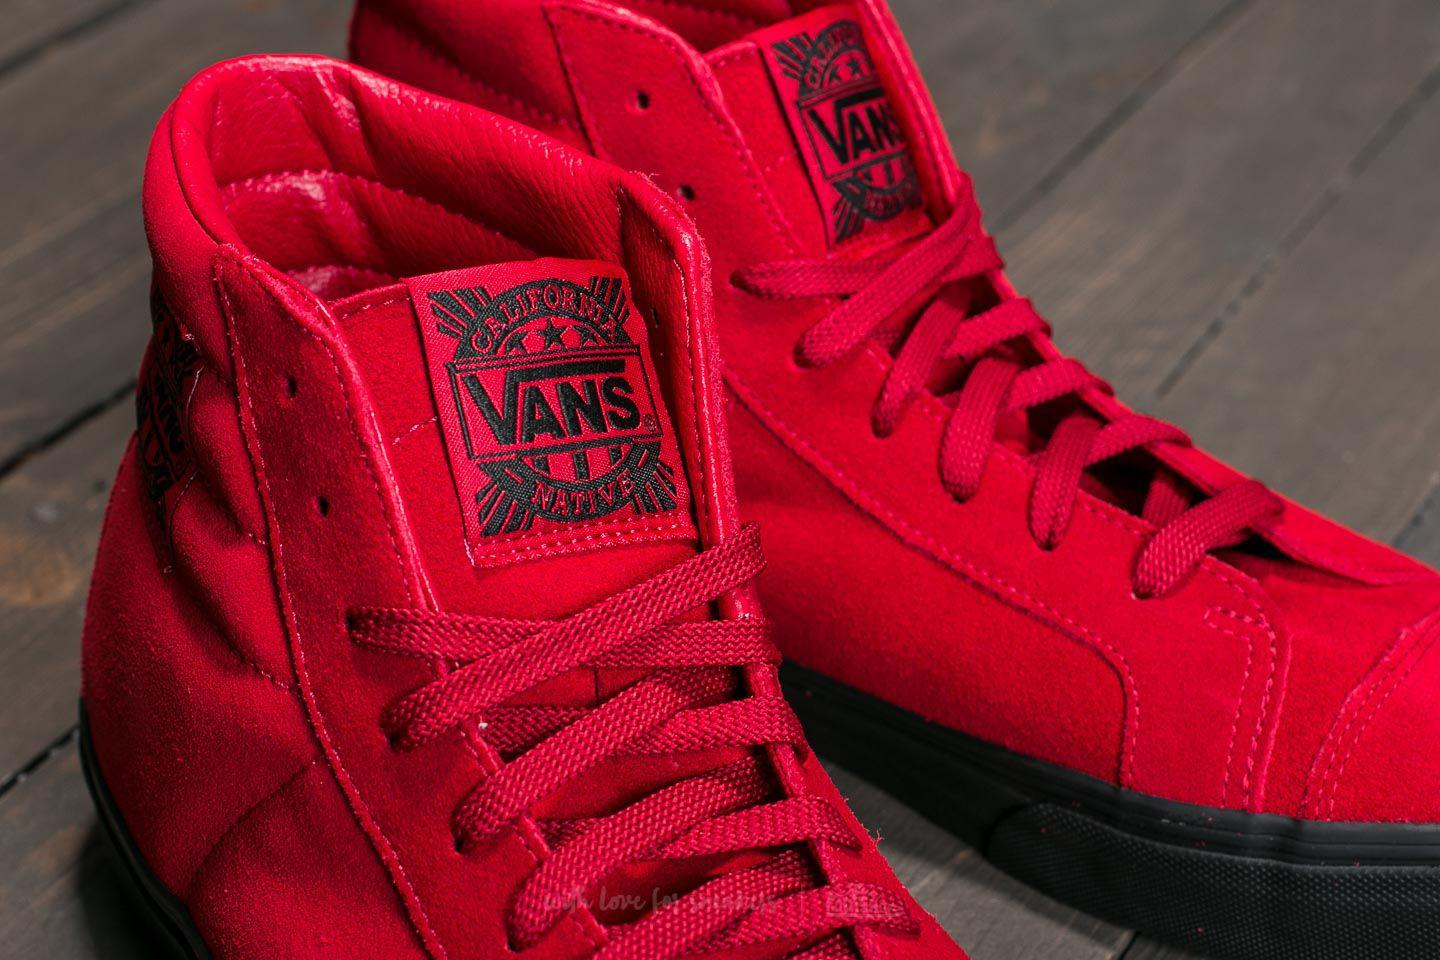 e9c6dd4cbaa8fe Lyst - Vans Style 238 (native Suede) Red  Black in Red for Men